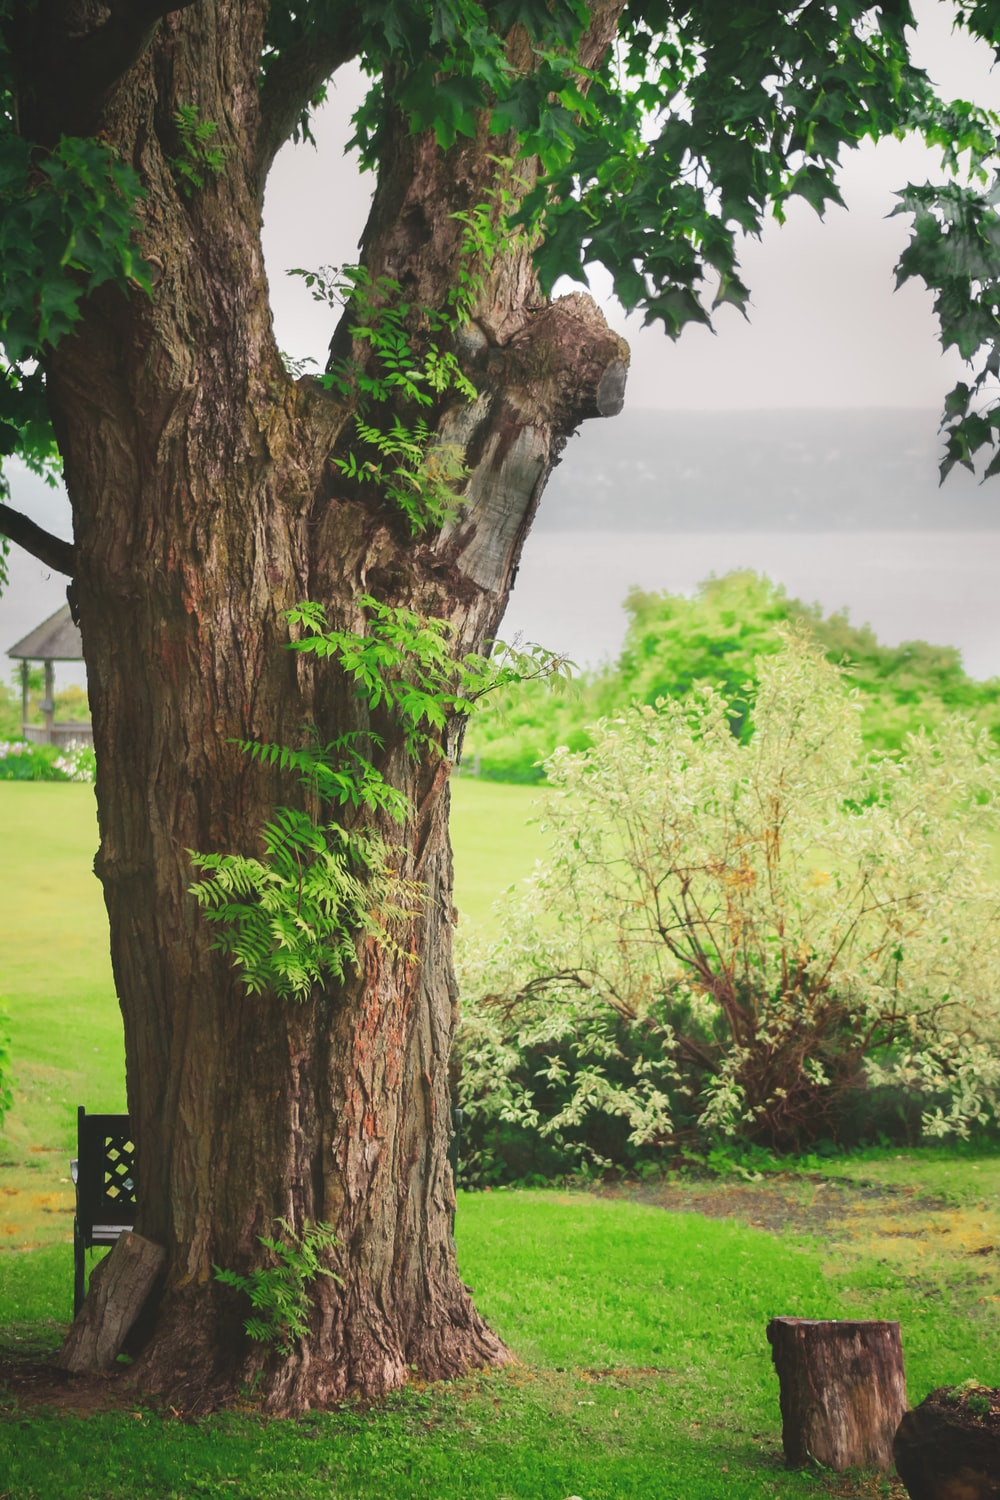 brown tree trunk on green grass field during daytime